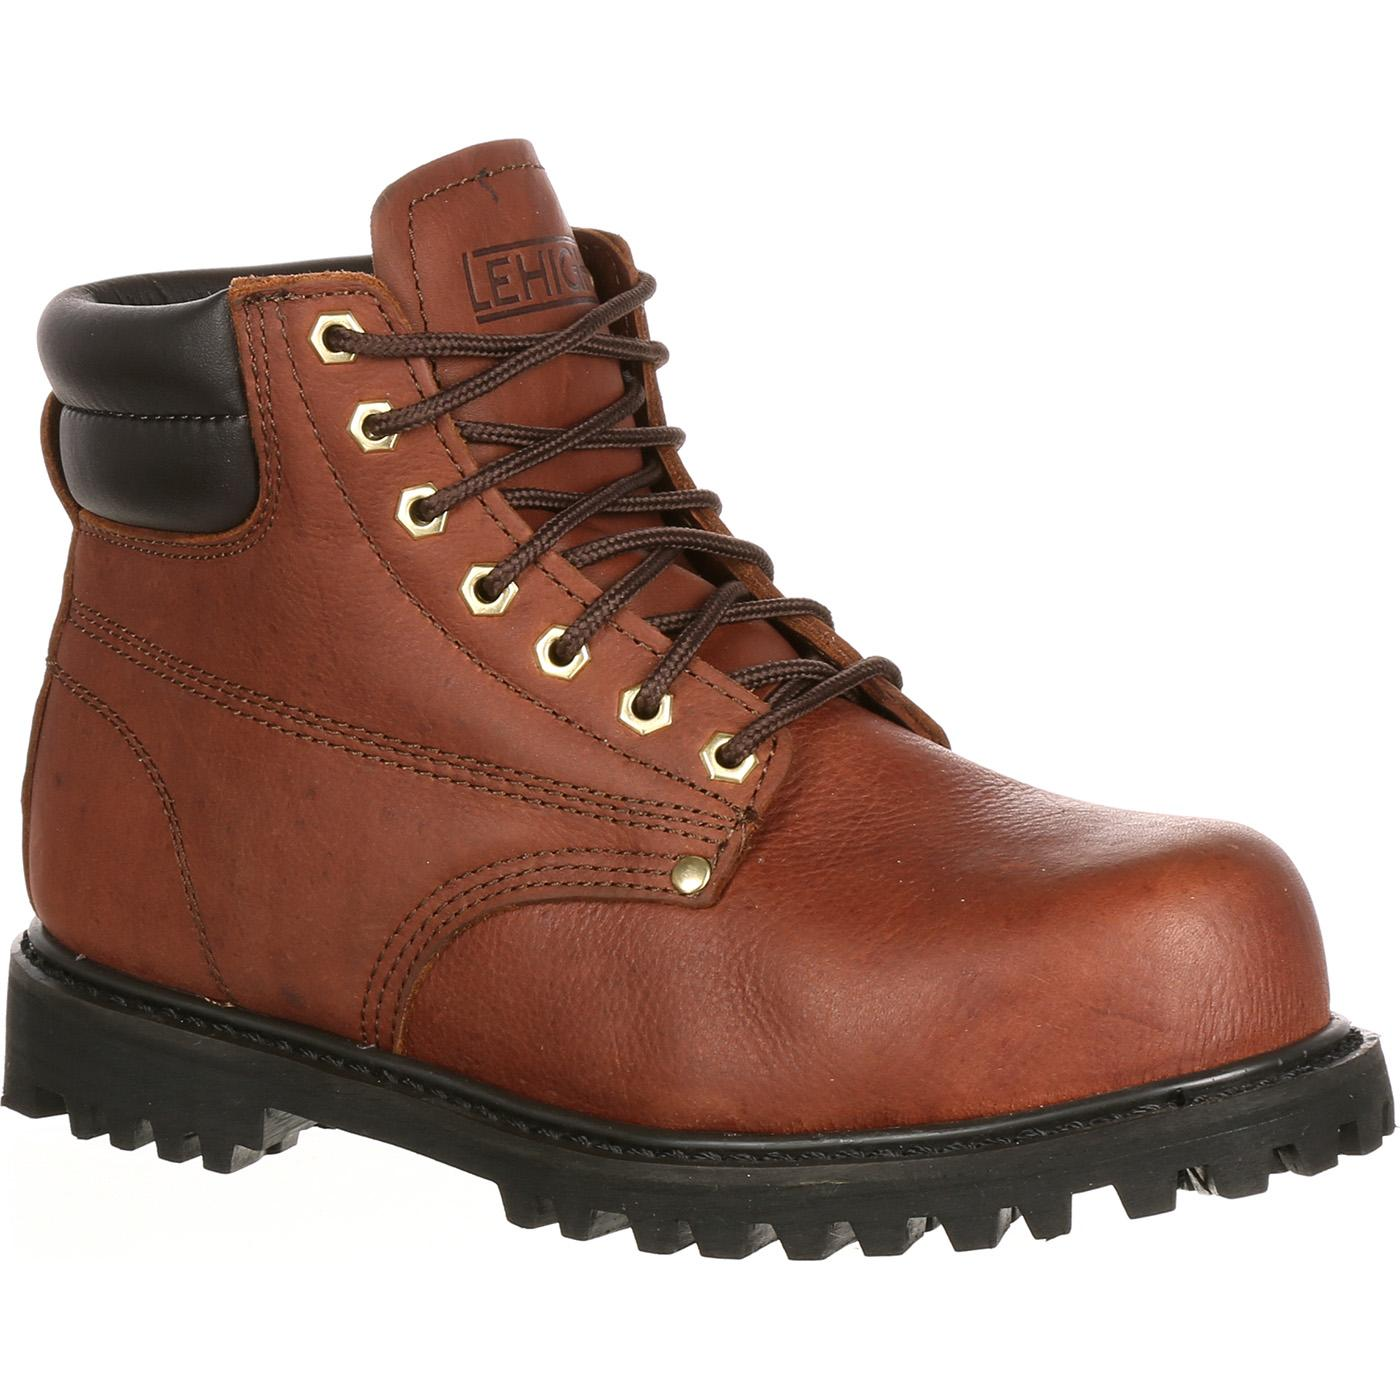 a6d9f396f5a5 Brown Leather Steel Toe 6